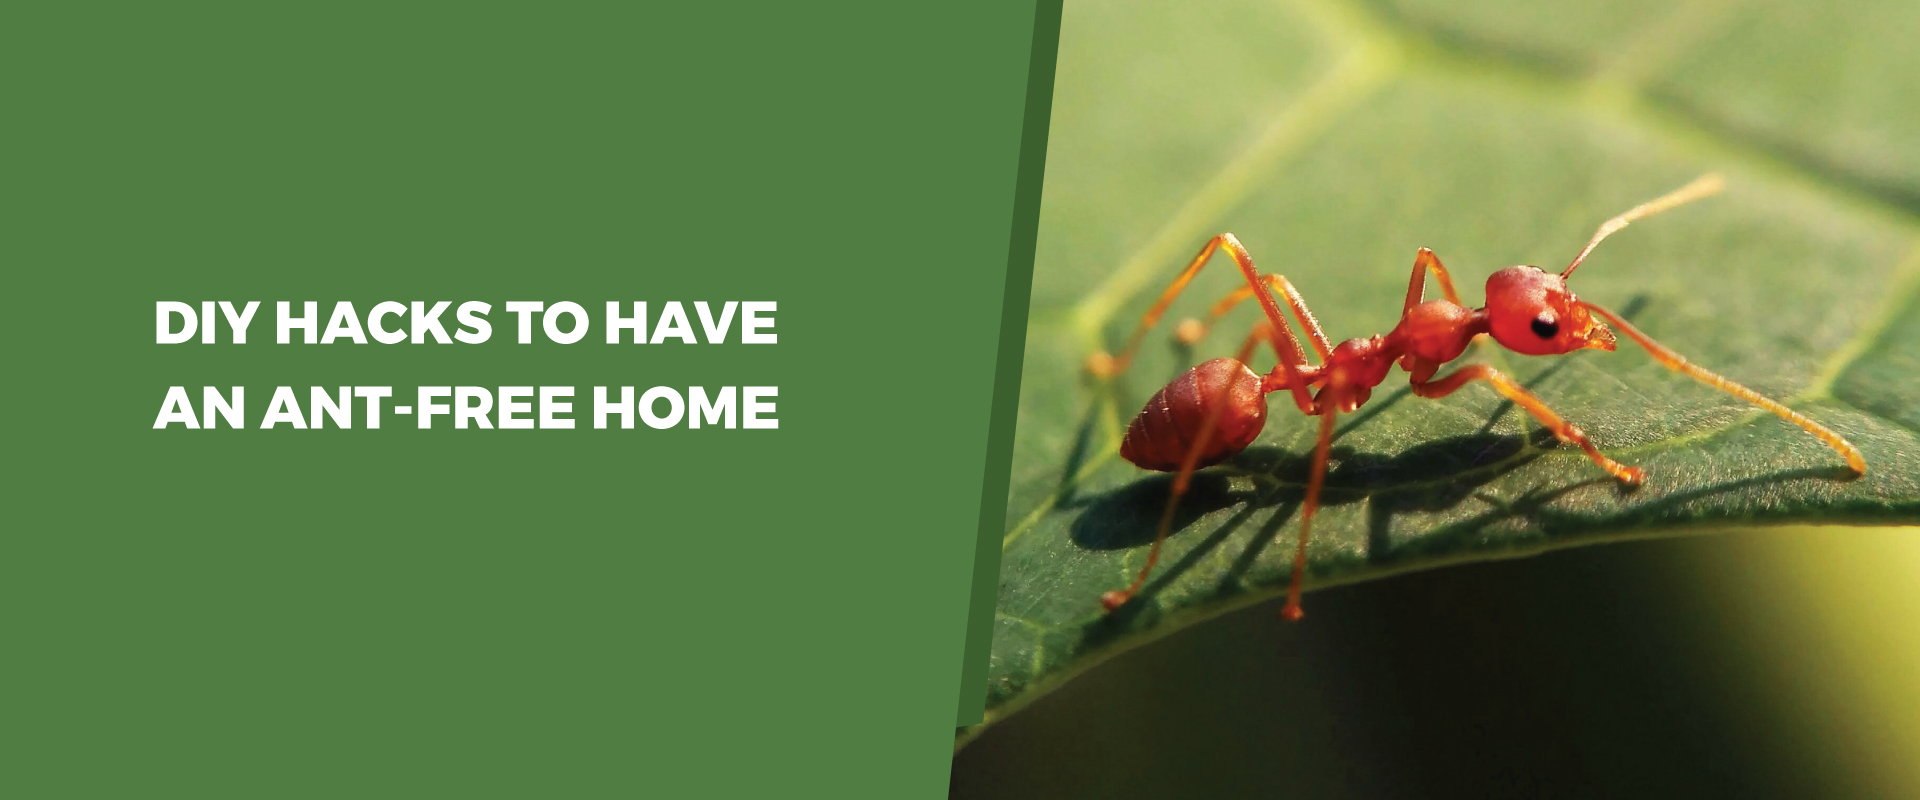 DIY Hacks To Have An Ant-Free Home